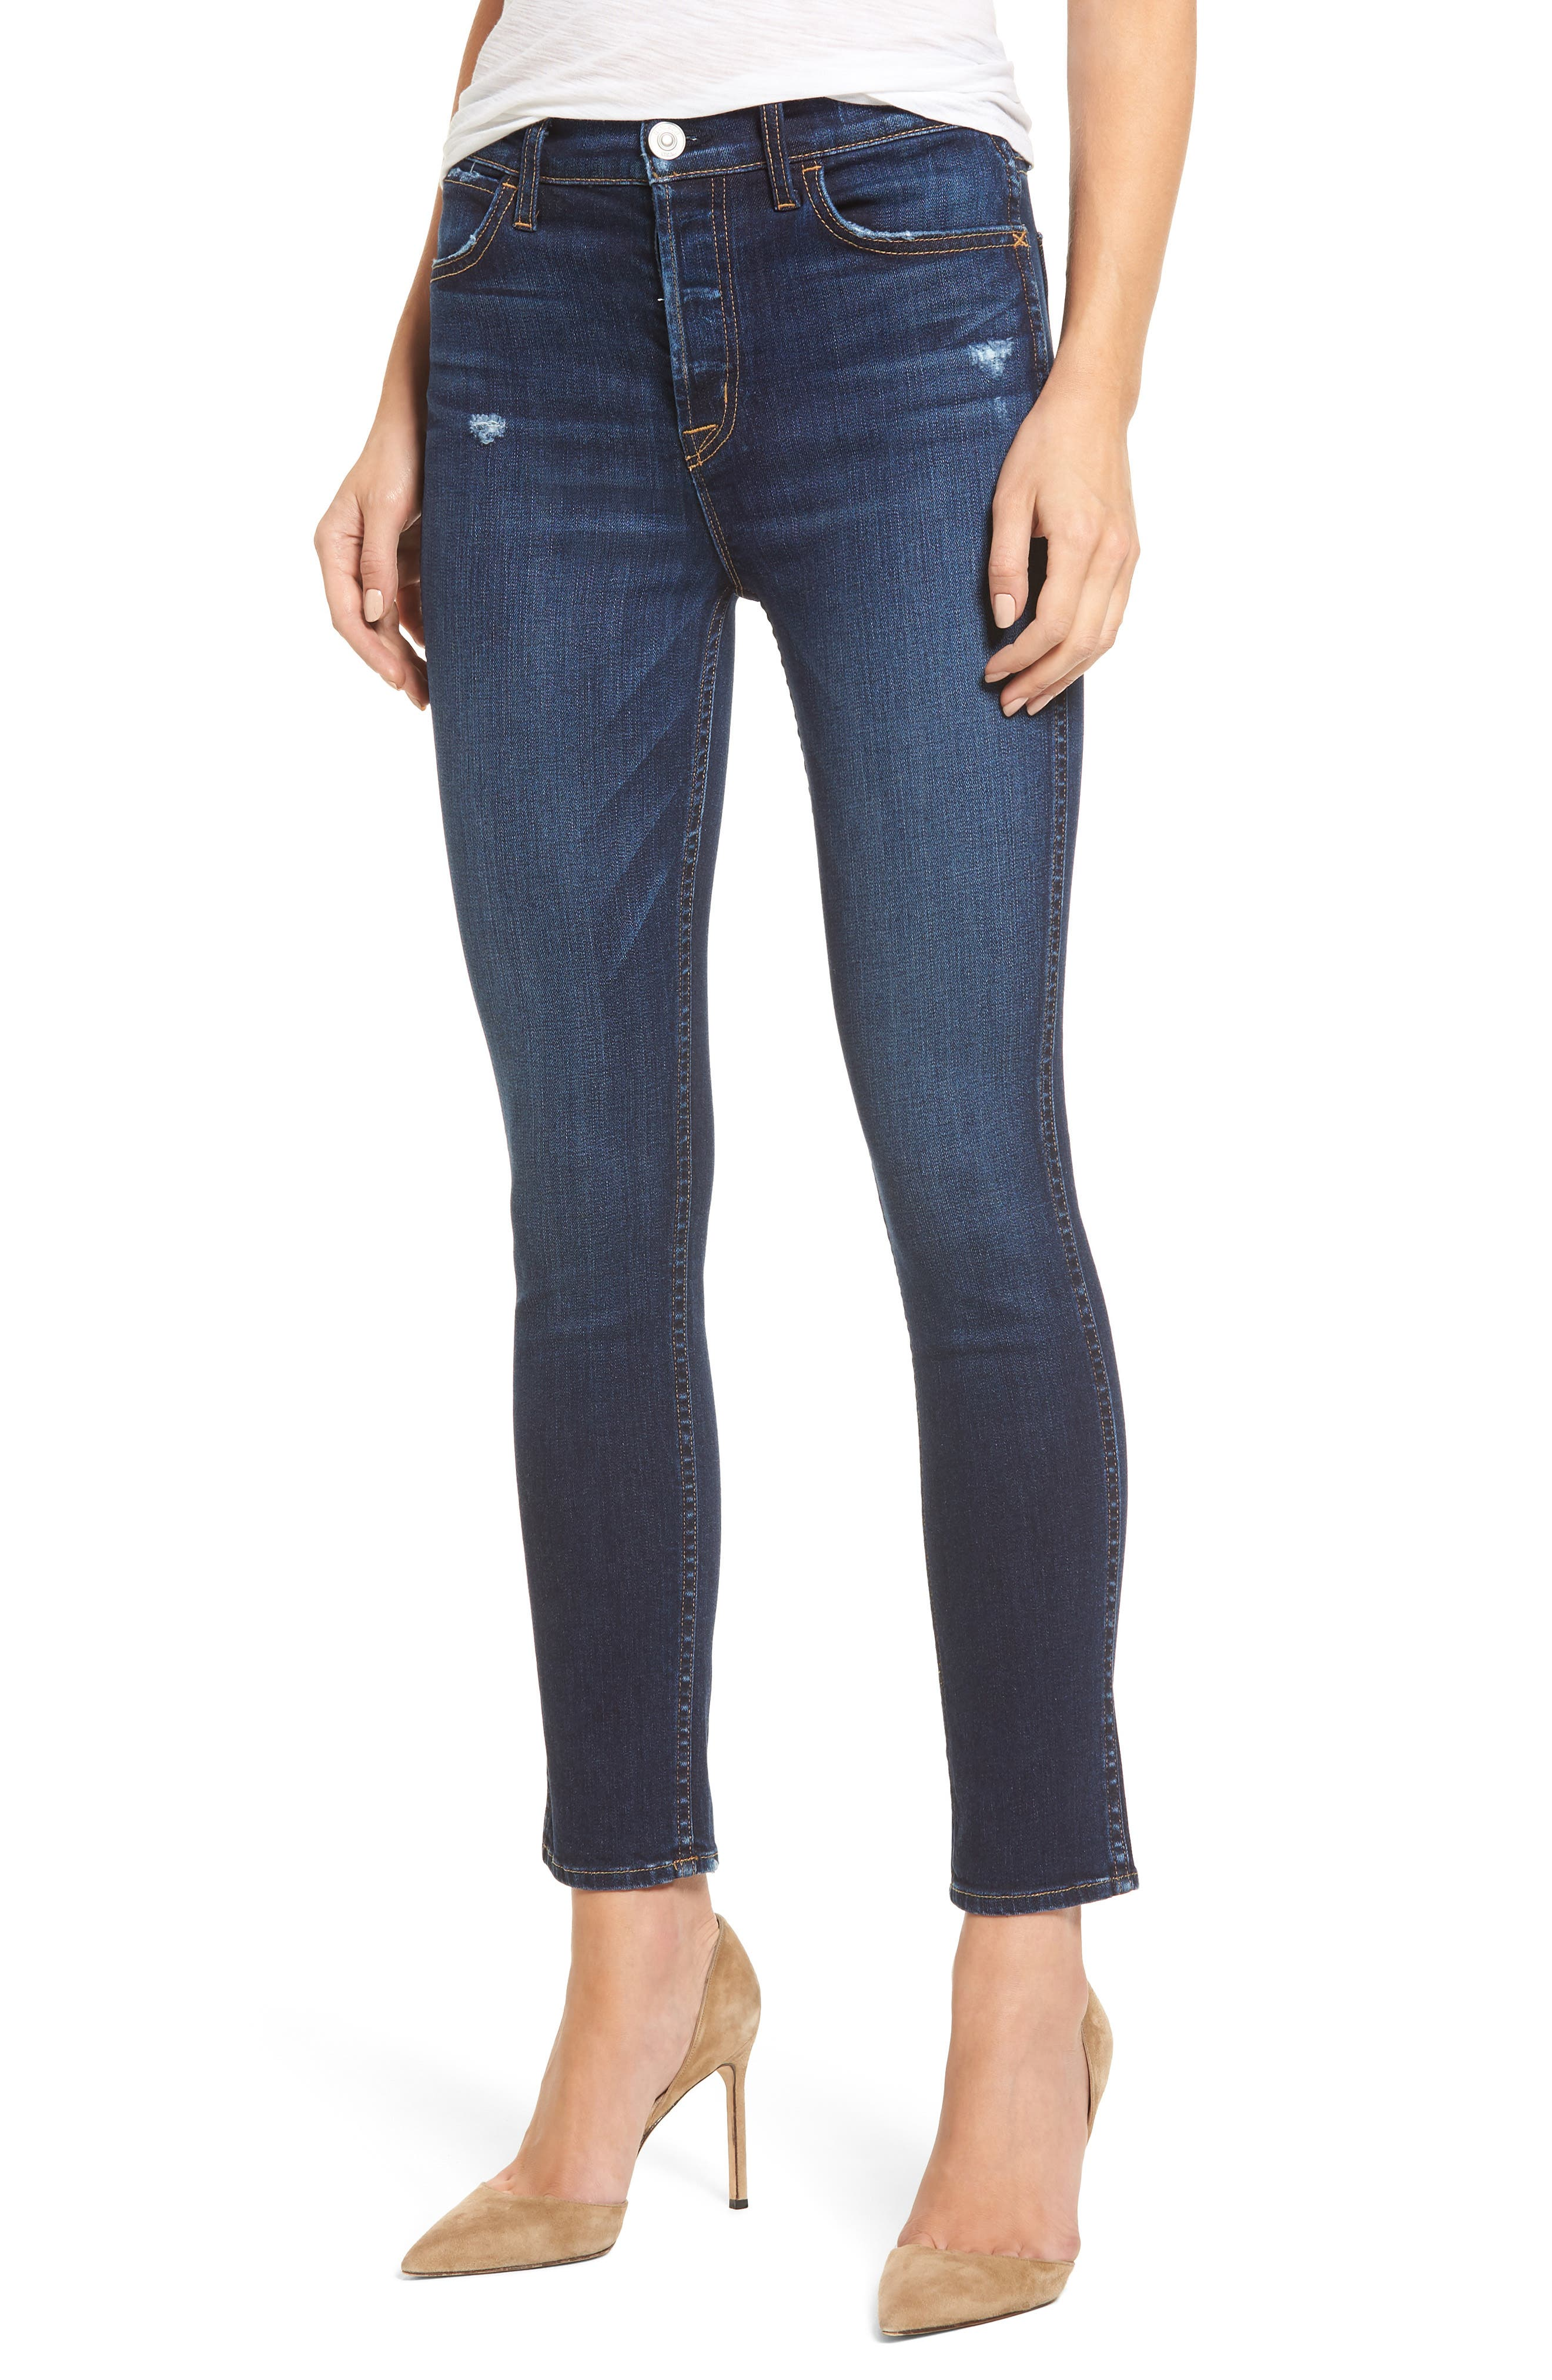 Holly High Waist Ankle Skinny Jeans,                             Main thumbnail 1, color,                             Corrupt